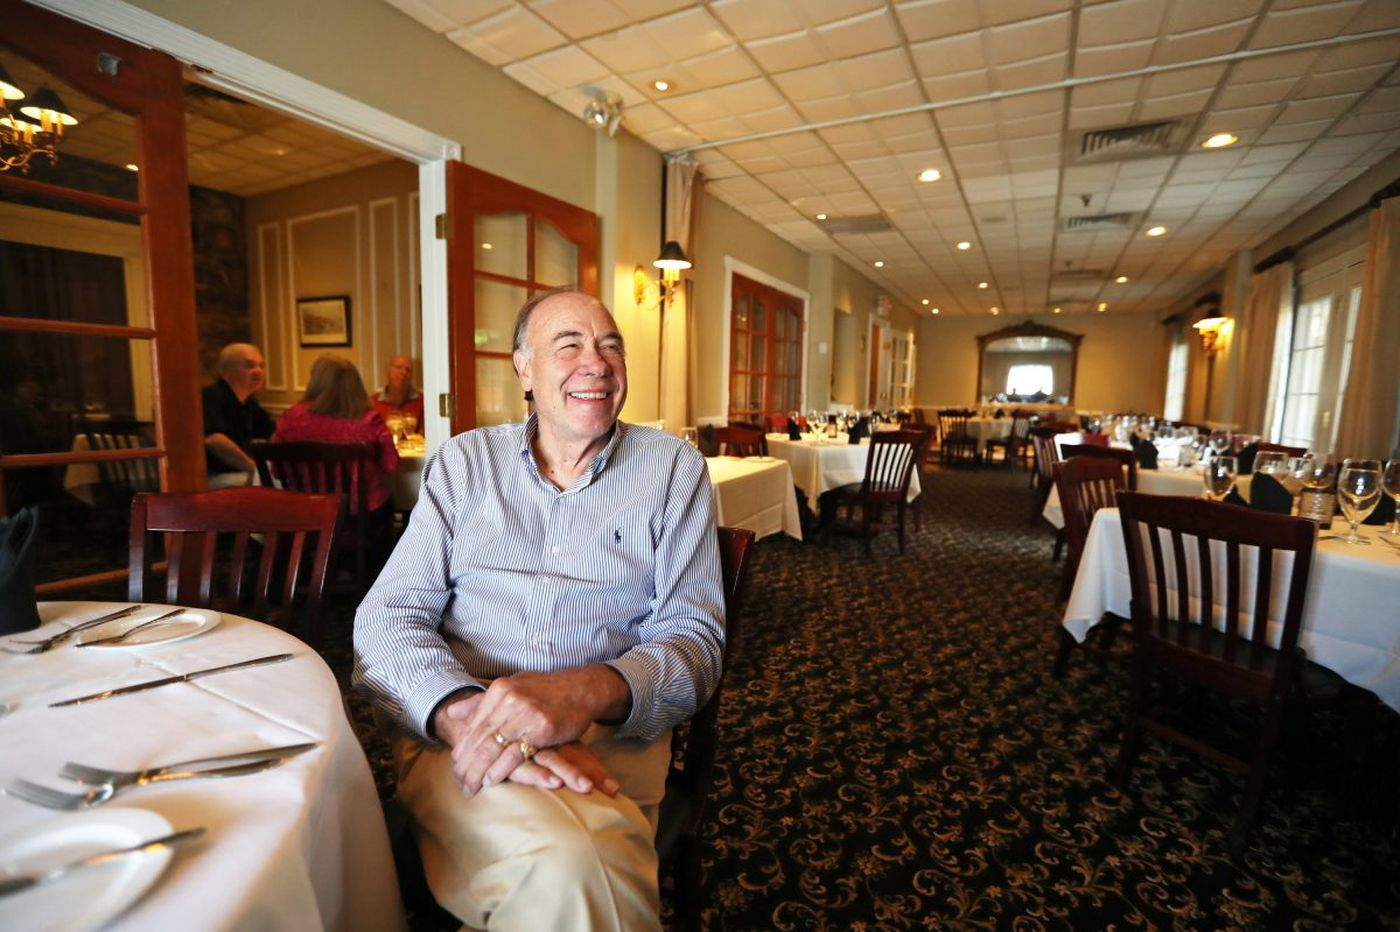 Inside the King of Prussia restaurant boom